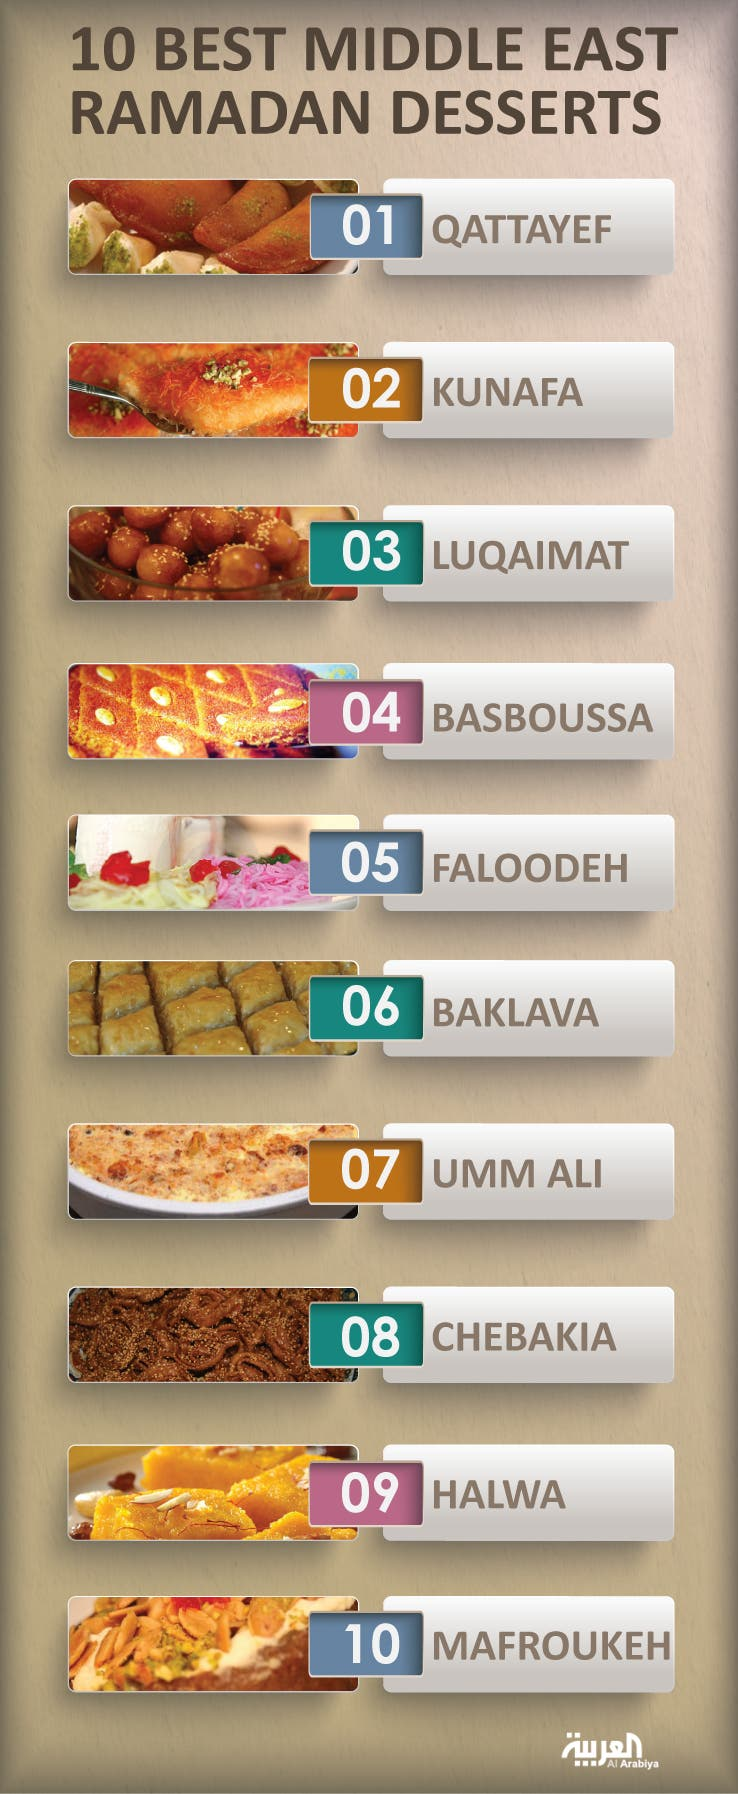 Infographic: 10 best Middle East Ramadan desserts